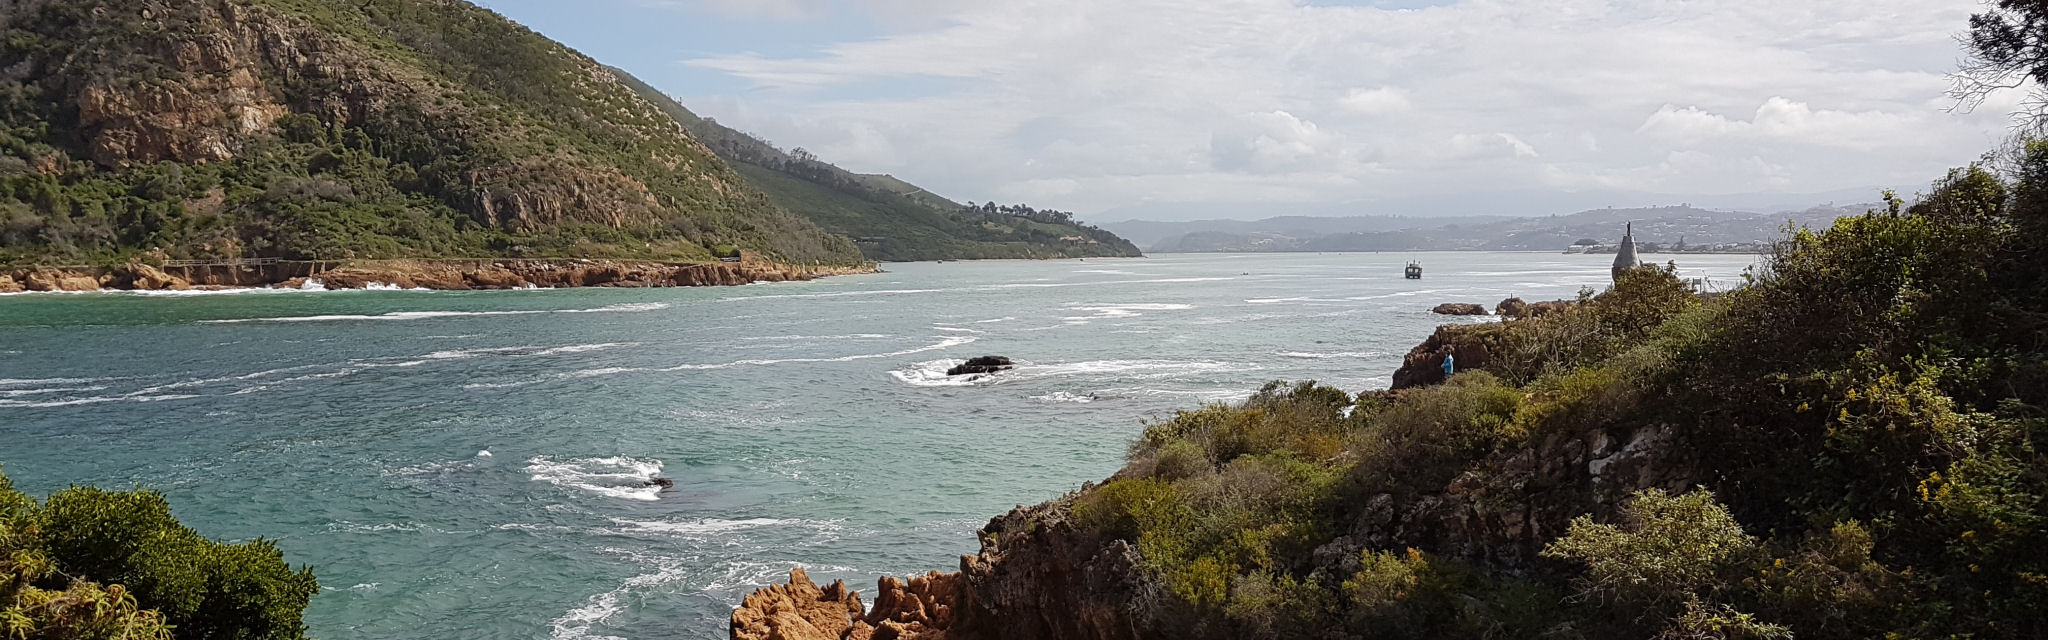 Visit Knysna, Knysna Tourism, Garden Route, South Africa